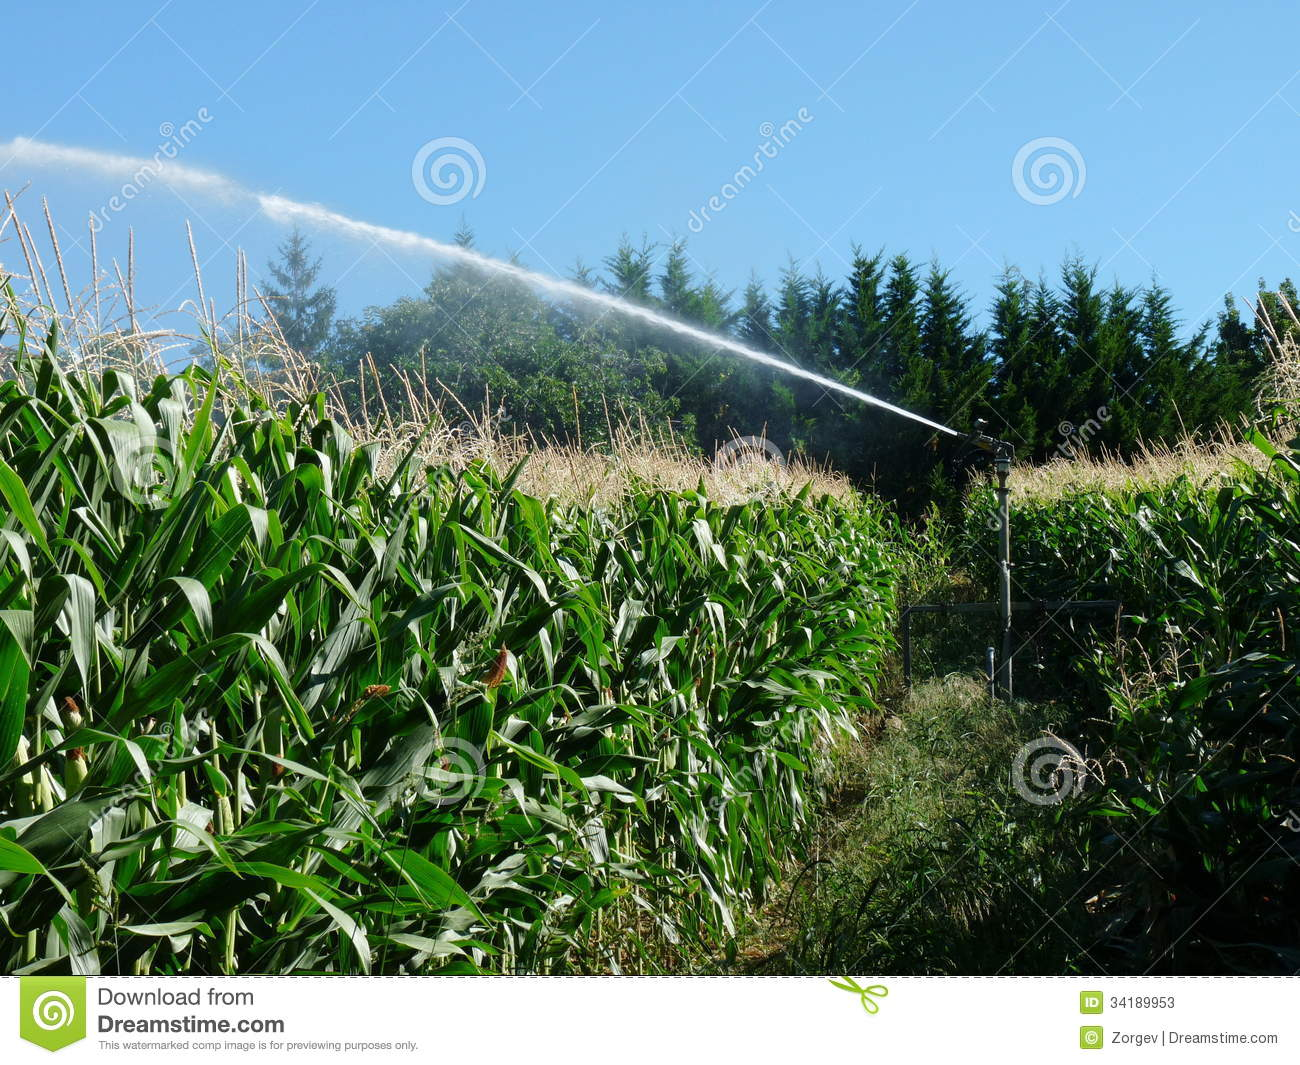 A Sprayer Spraying Water In A Cornfield Stock Image ...